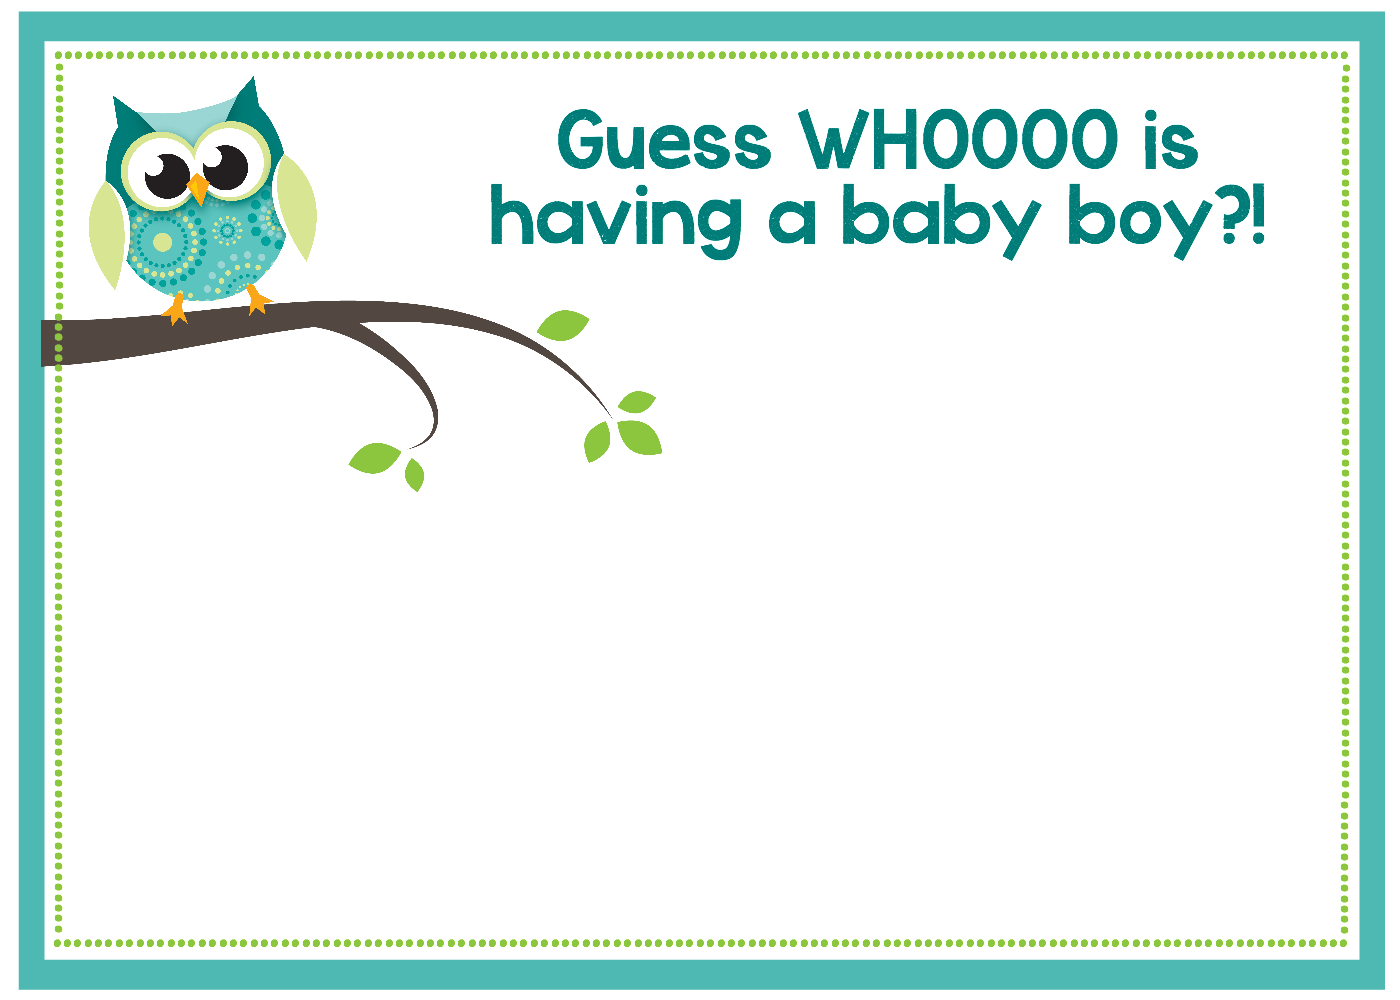 Free Printable Owl Baby Shower Invitations {& Other Printables} - Free Printable Baby Shower Invitations Templates For Boys